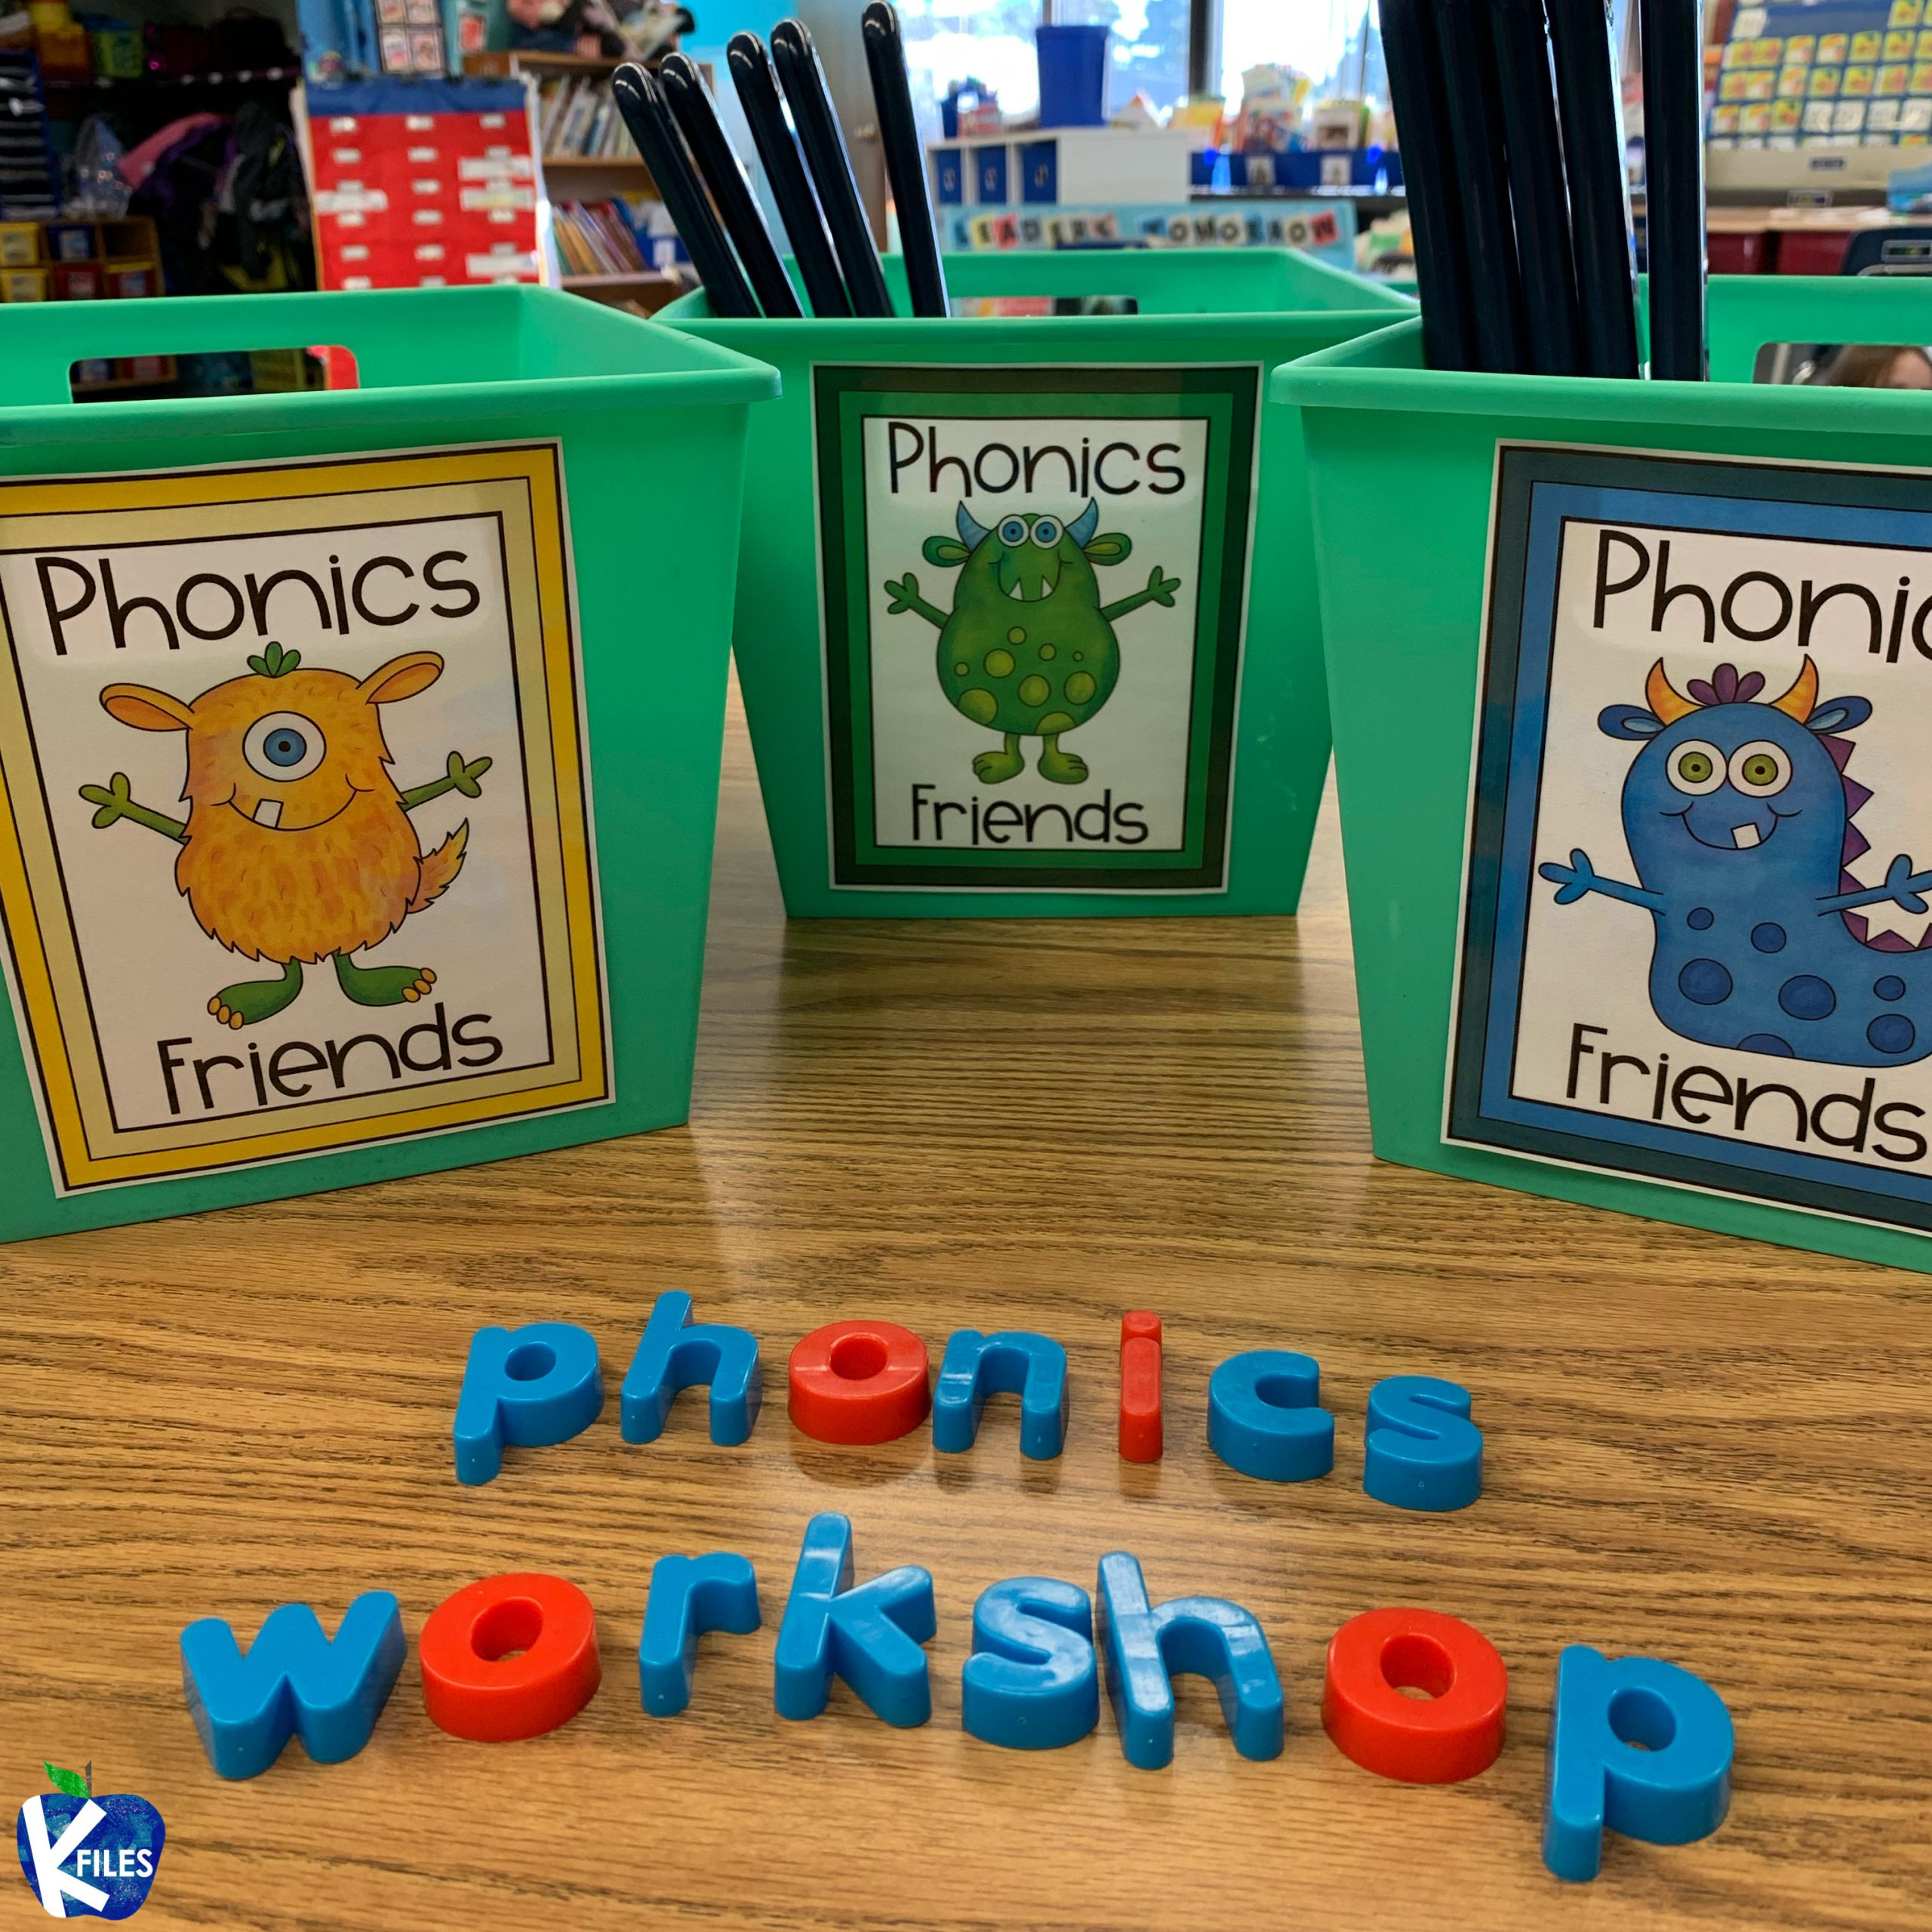 Phonics Workshop: How to Organize it all